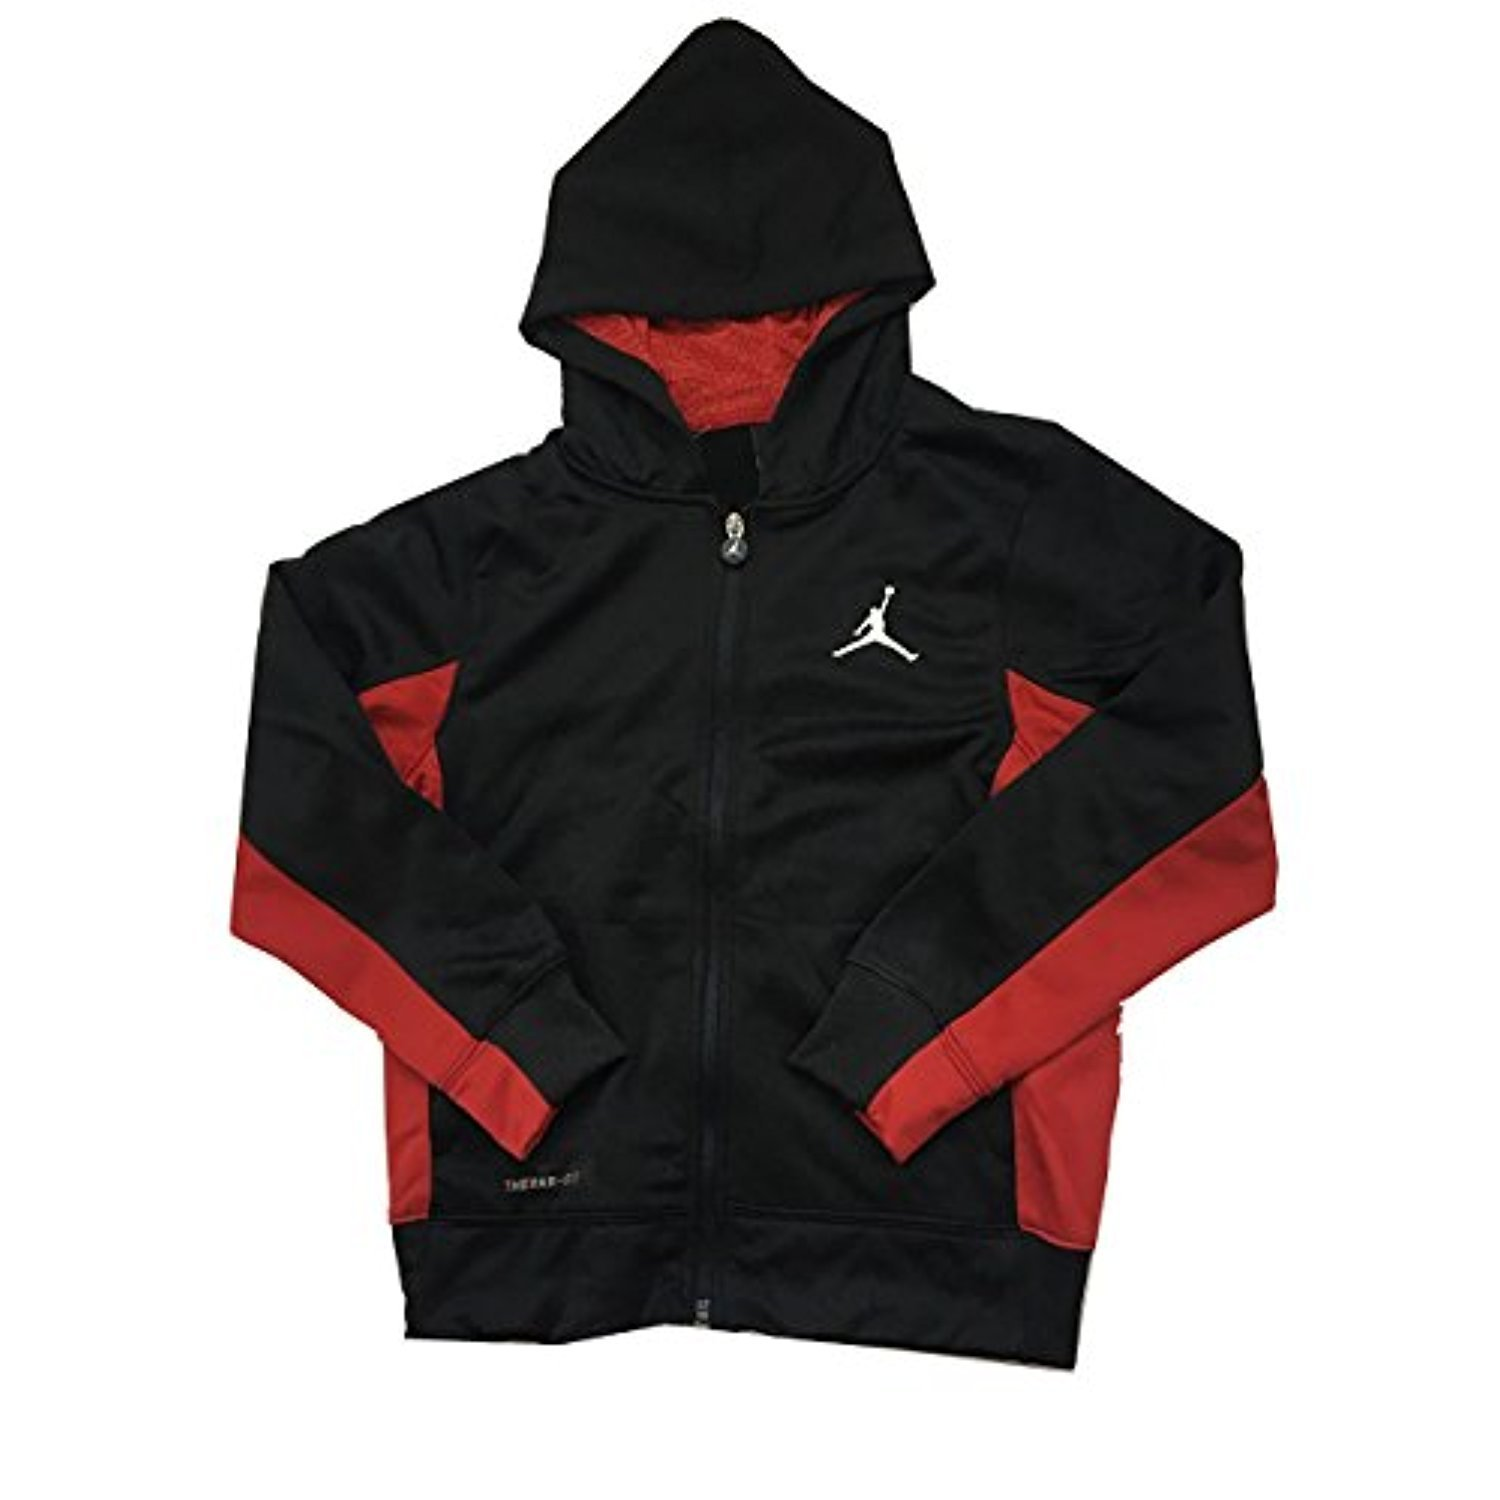 4d252c3bf40 Full-zip design allows him to choose his comfort. Side seam pockets store  his essentials. Hood helps to ...